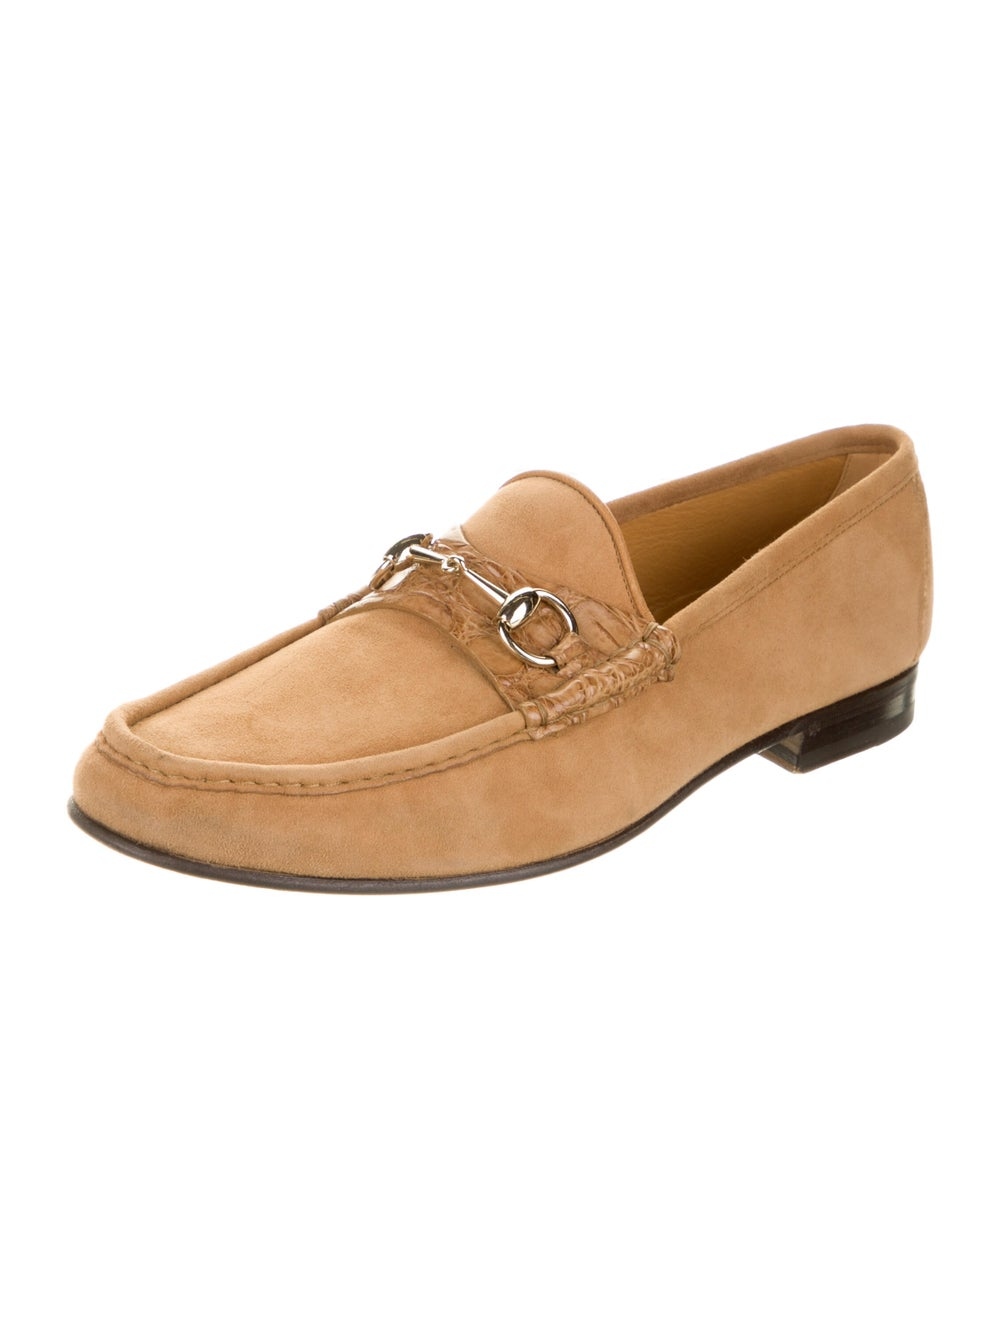 Gucci Horsebit Accent Suede Dress Loafers Brown - image 2